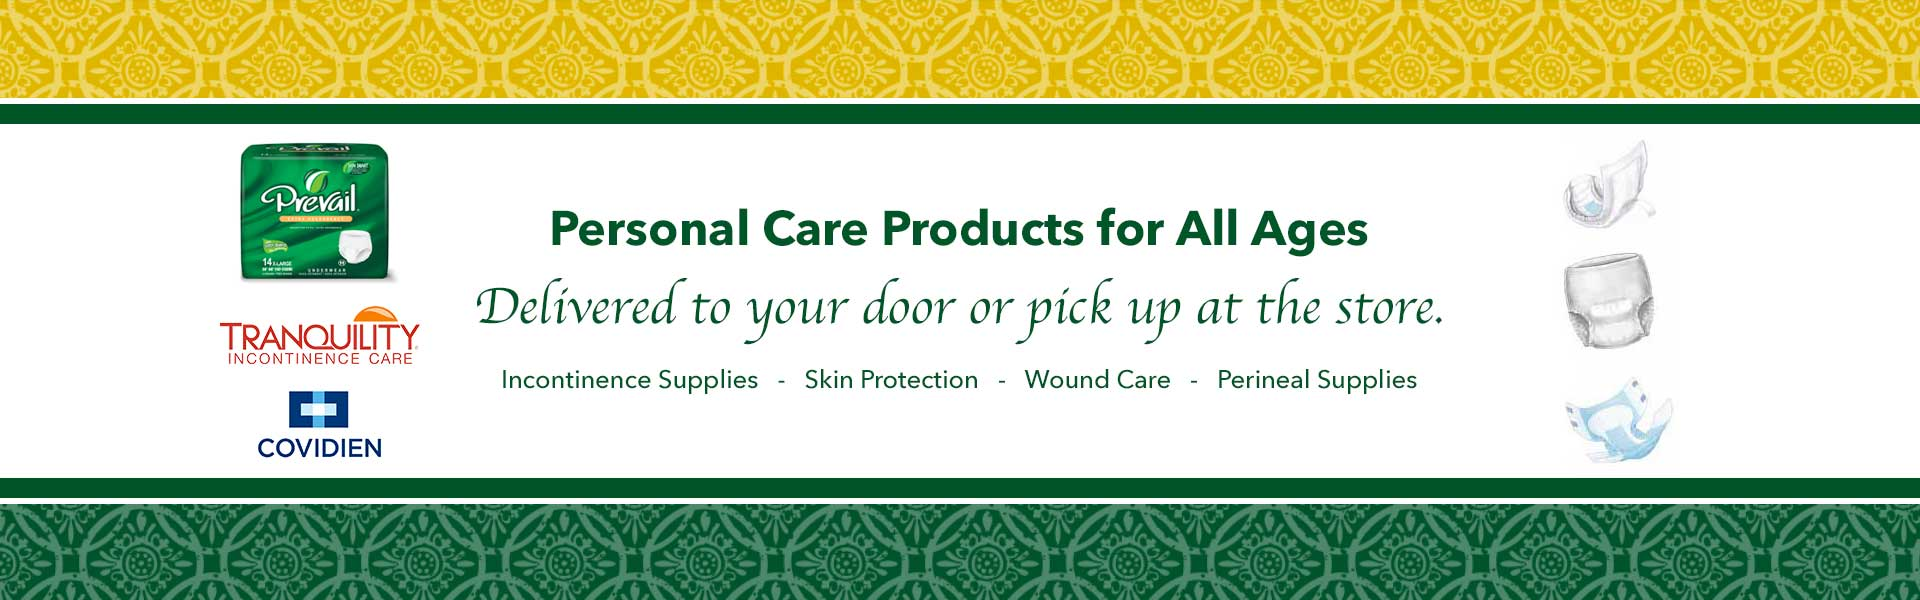 personal-care-products